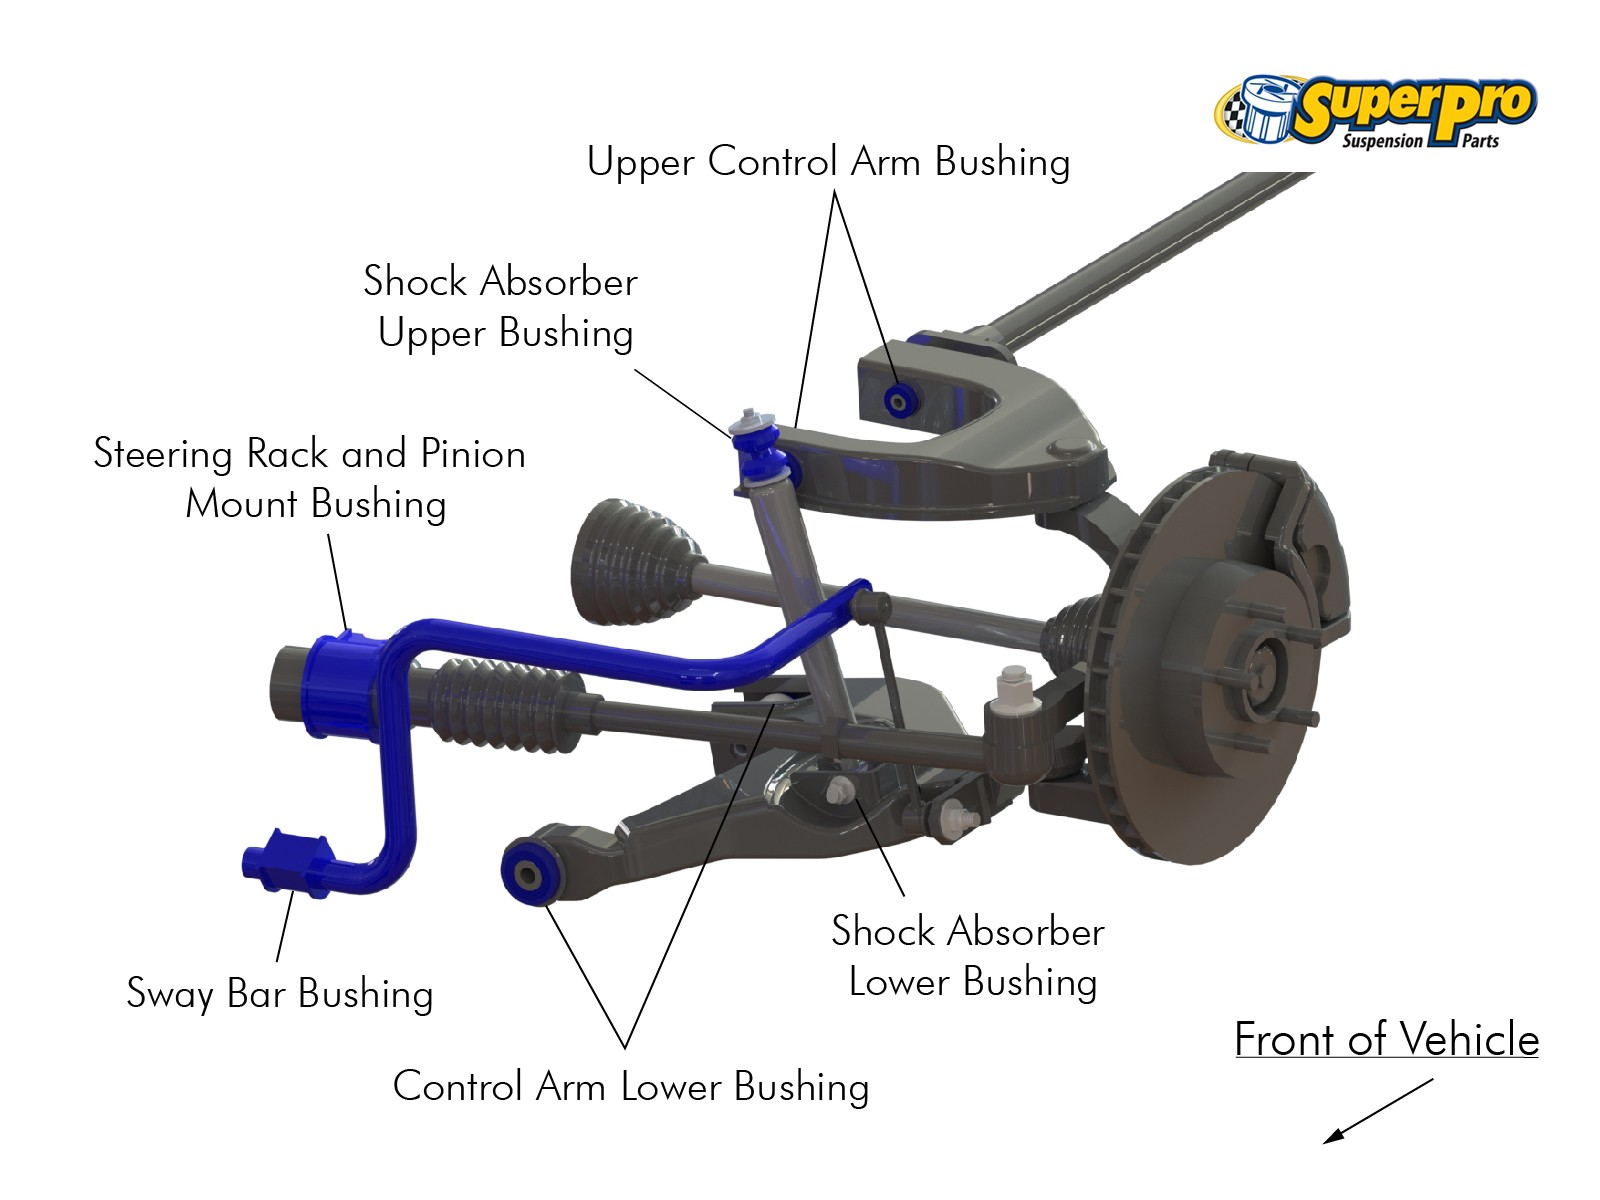 Car Front End Diagram Superpro Tradeview Suspension Part Search Of Car Front End Diagram